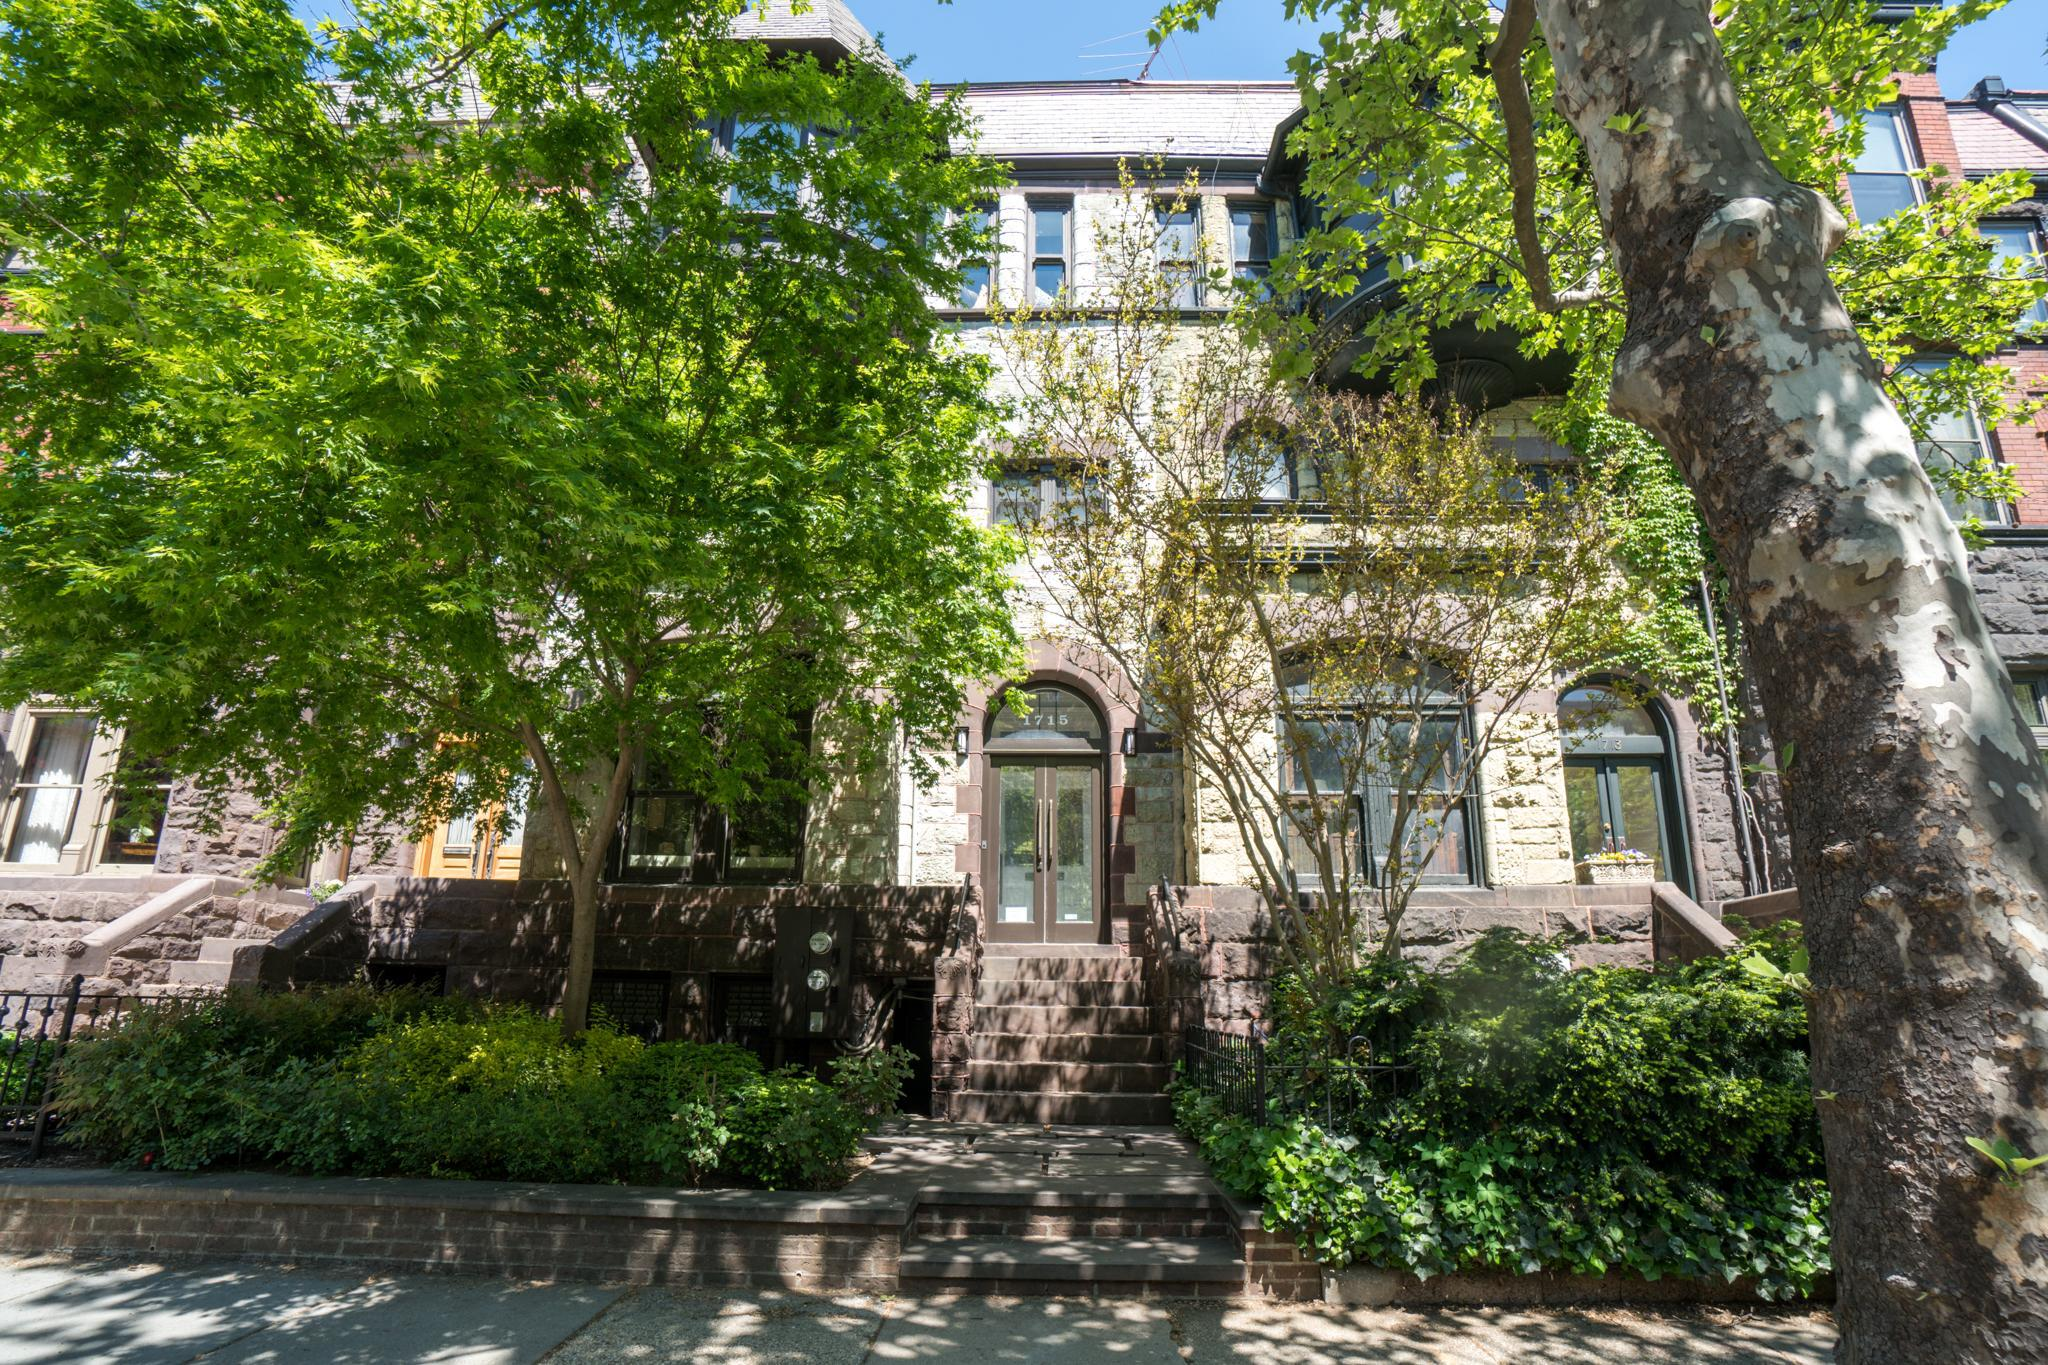 Townhouse for Sale at 1715 Q St NW Washington, District Of Columbia 20009 United States